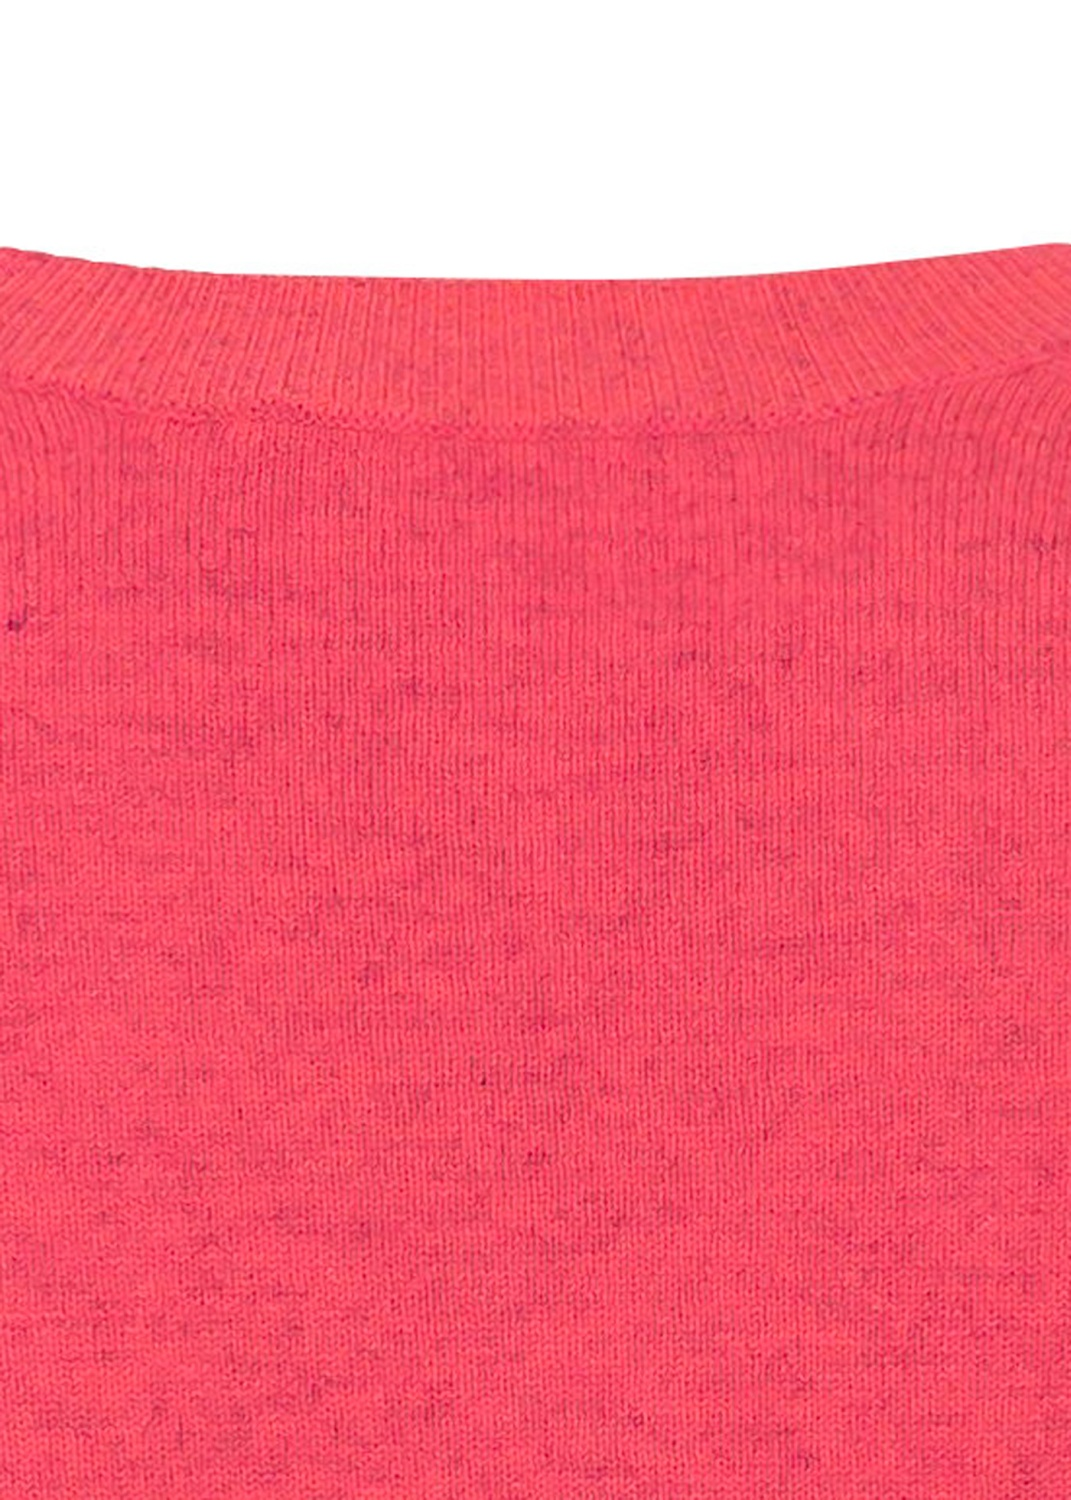 FA-UX-KNIT000025 image number 3